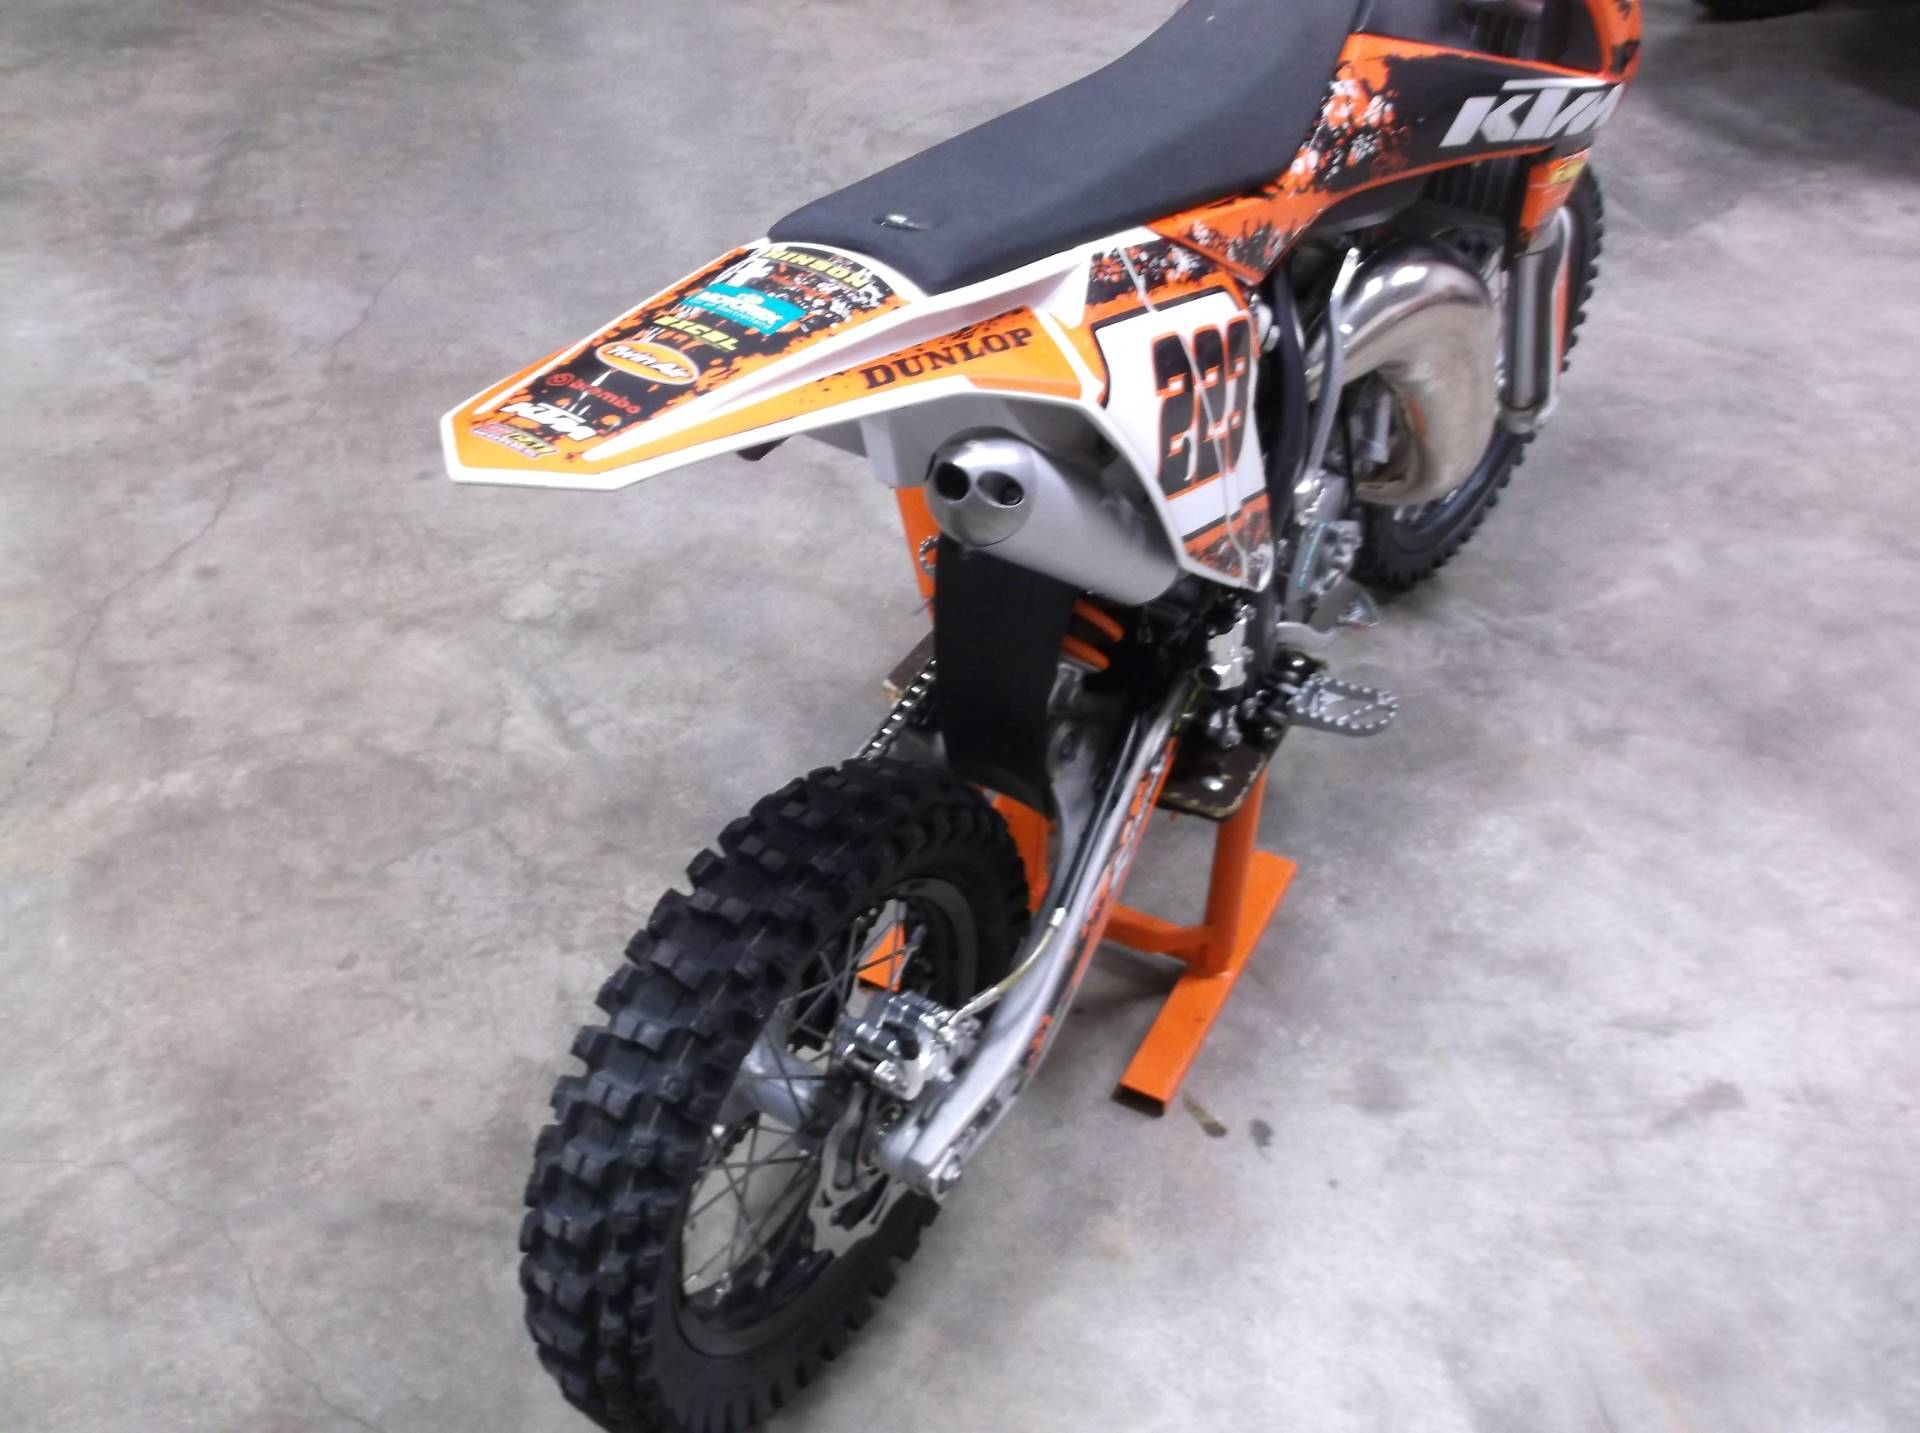 2016 KTM 65 SX in Sioux City, Iowa - Photo 2